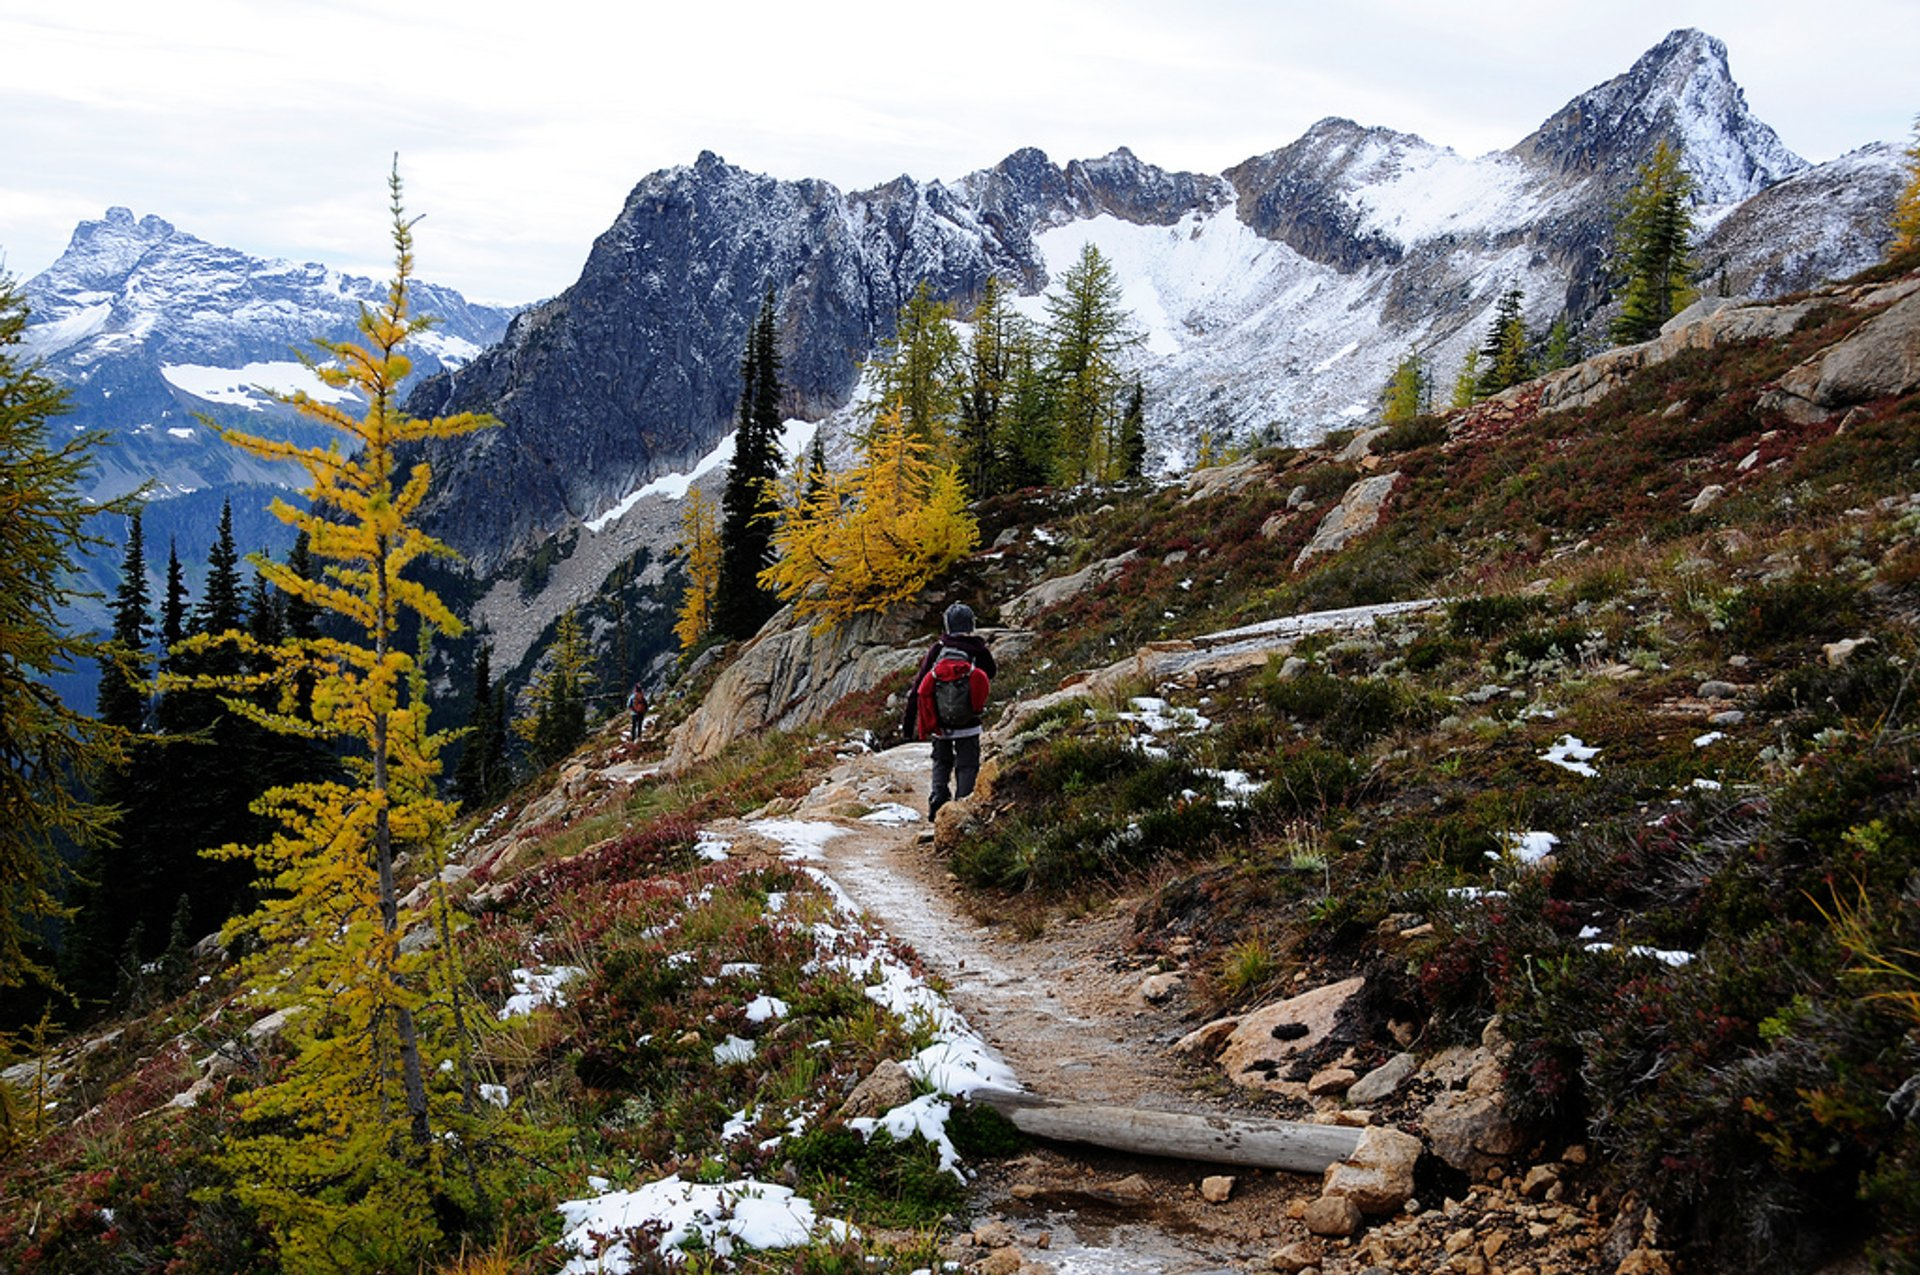 Pacific Crest Trail in California 2019 - Best Time